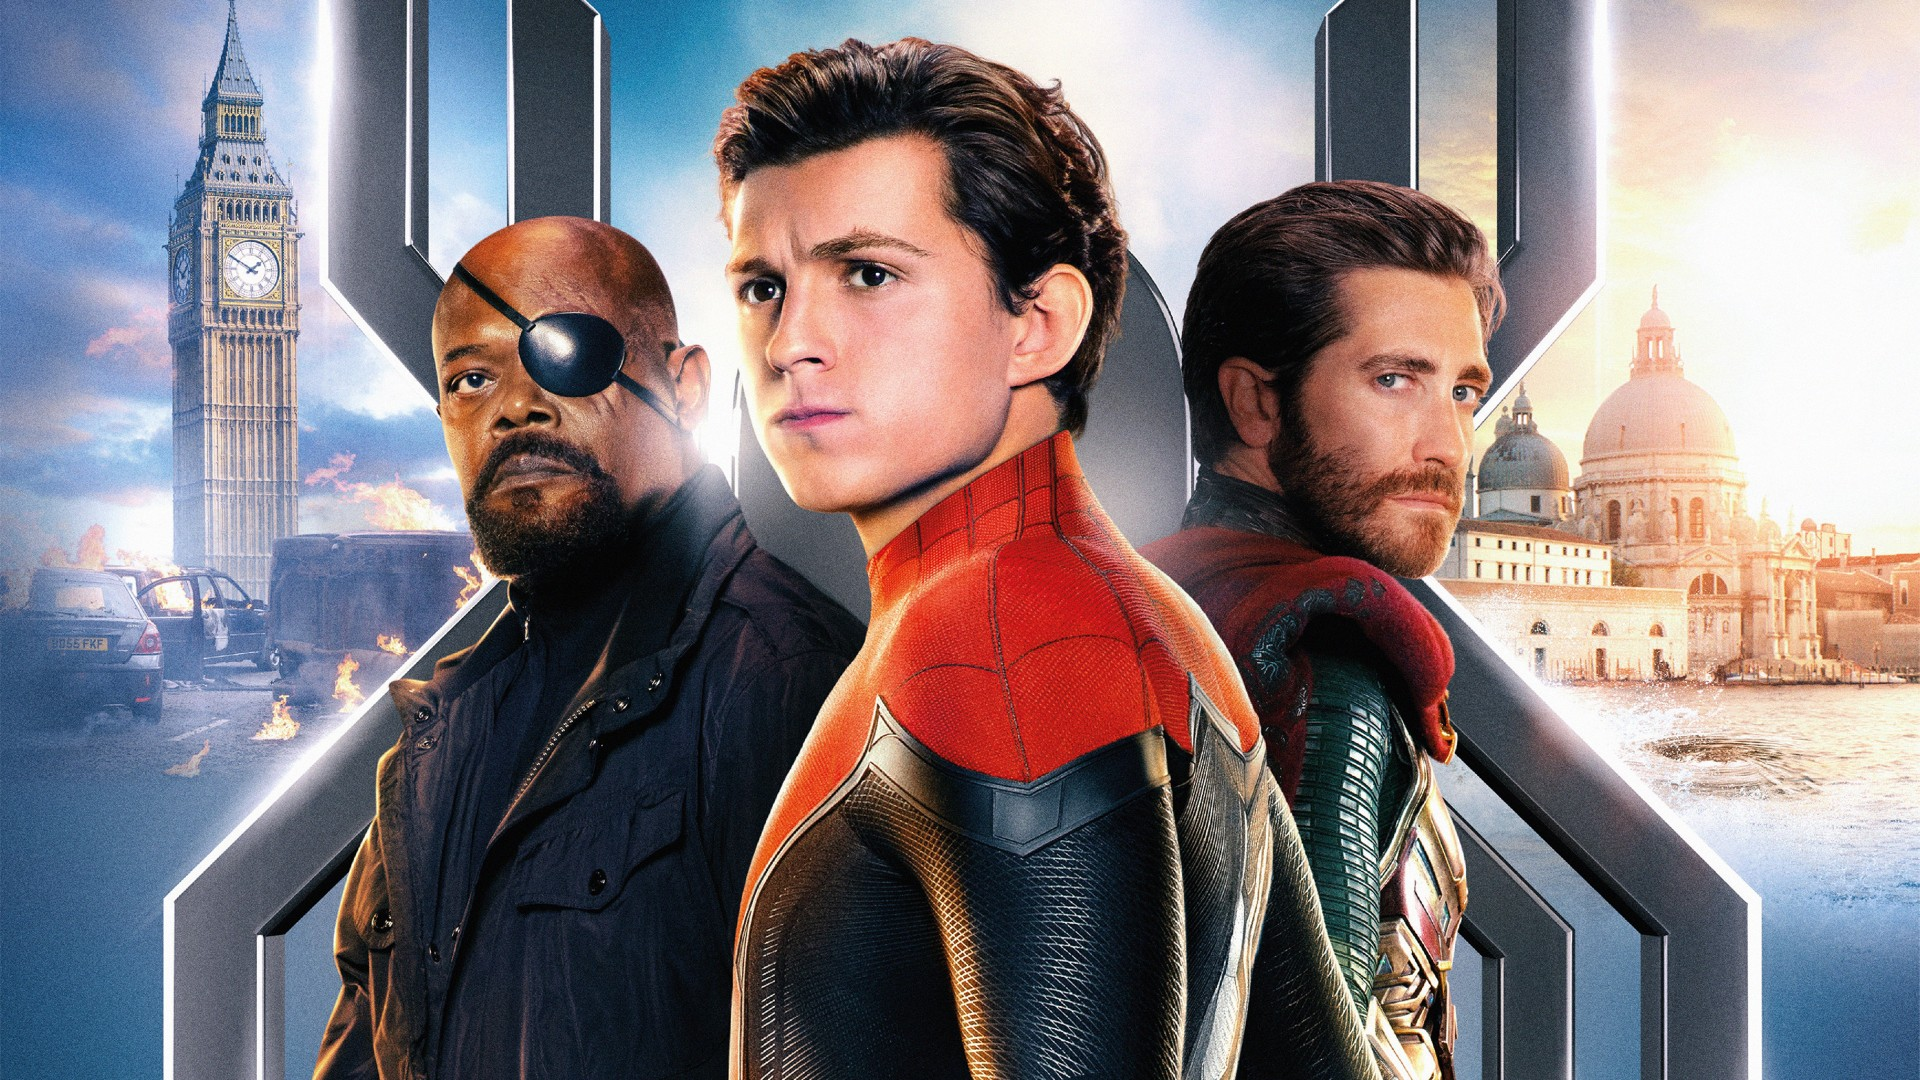 Cute Wallpapers For Iphone 6s Plus Spider Man Far From Home 2019 4k Wallpapers Hd